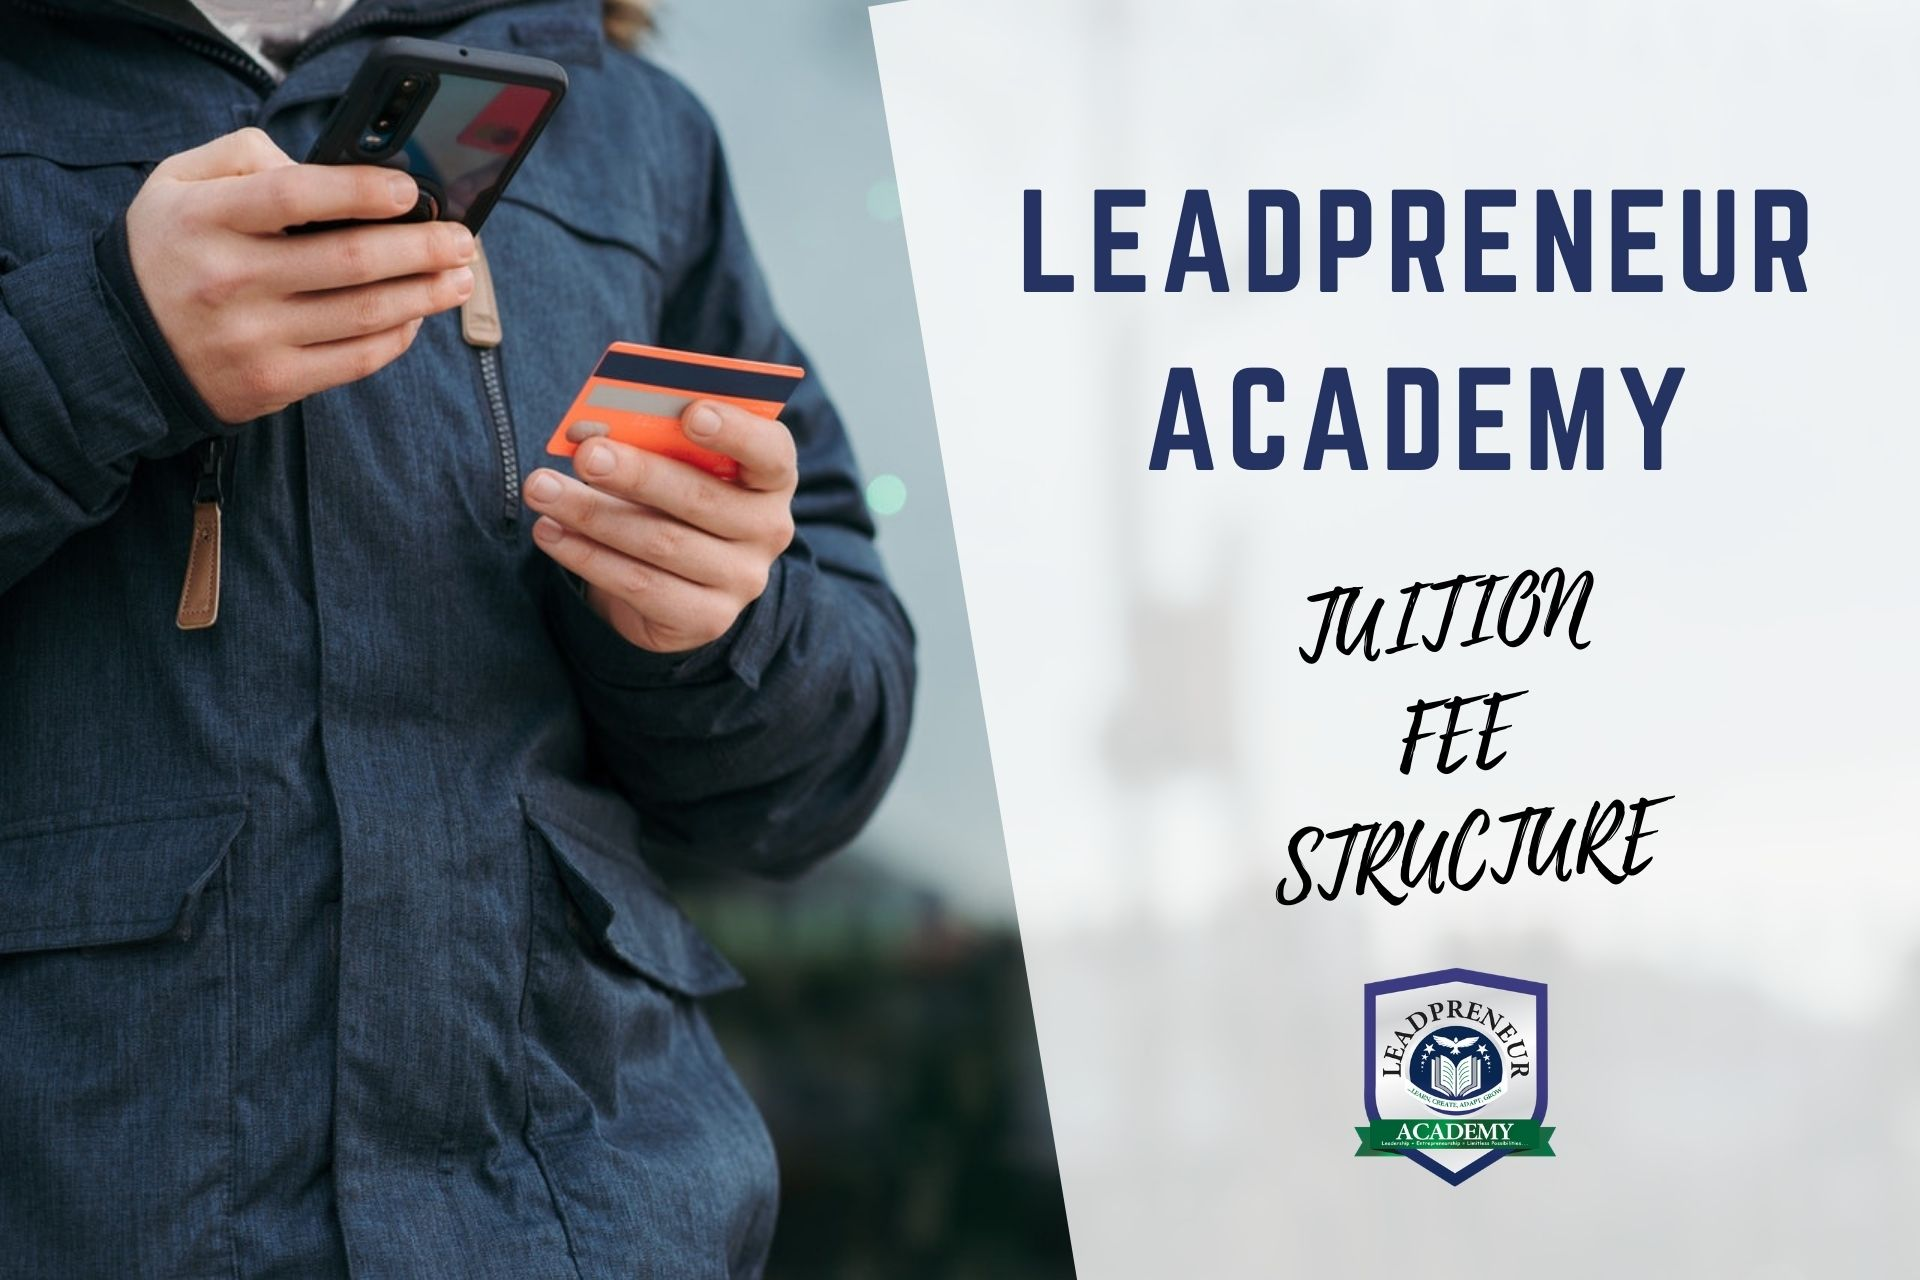 how to apply for a scholarship in leadprenuer academy benin